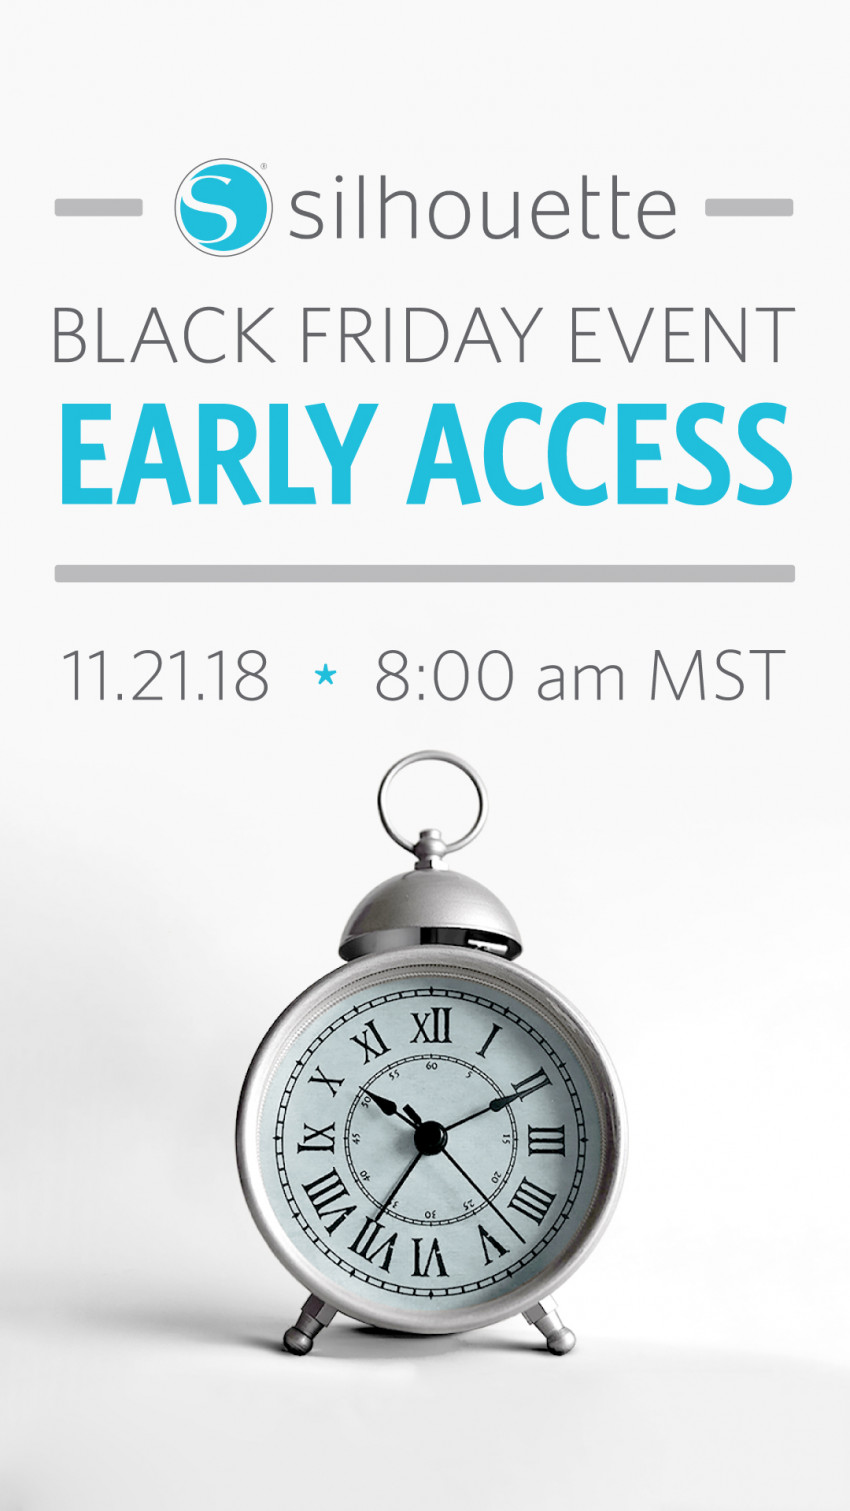 Silhouette Black Friday Discount code: CRAFT Get early access to sale